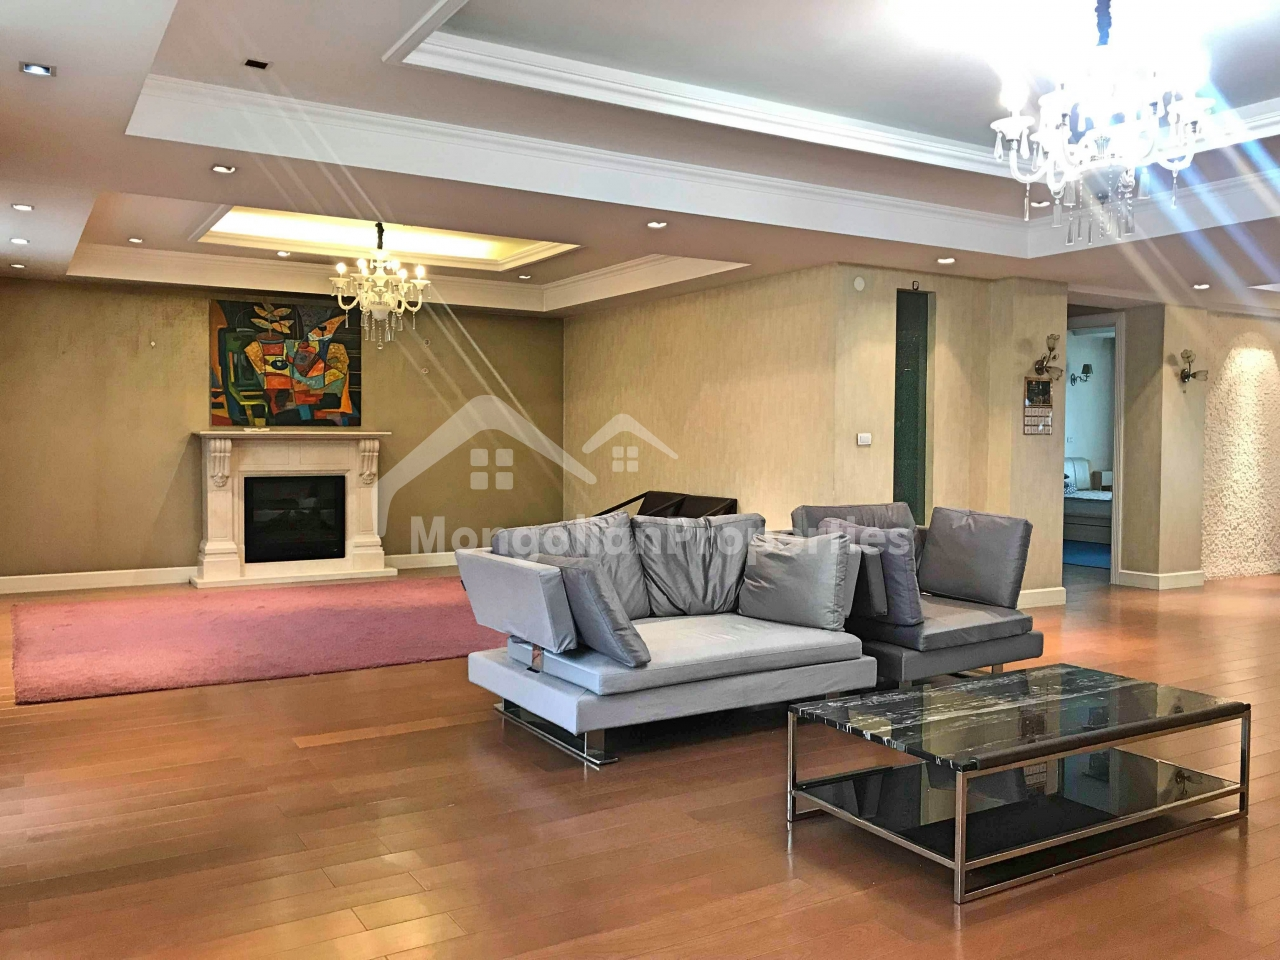 SPACIOUS 6 BDR APARTMENT IS FOR RENT AT THE ZAISAN LUXURY VILLAGE